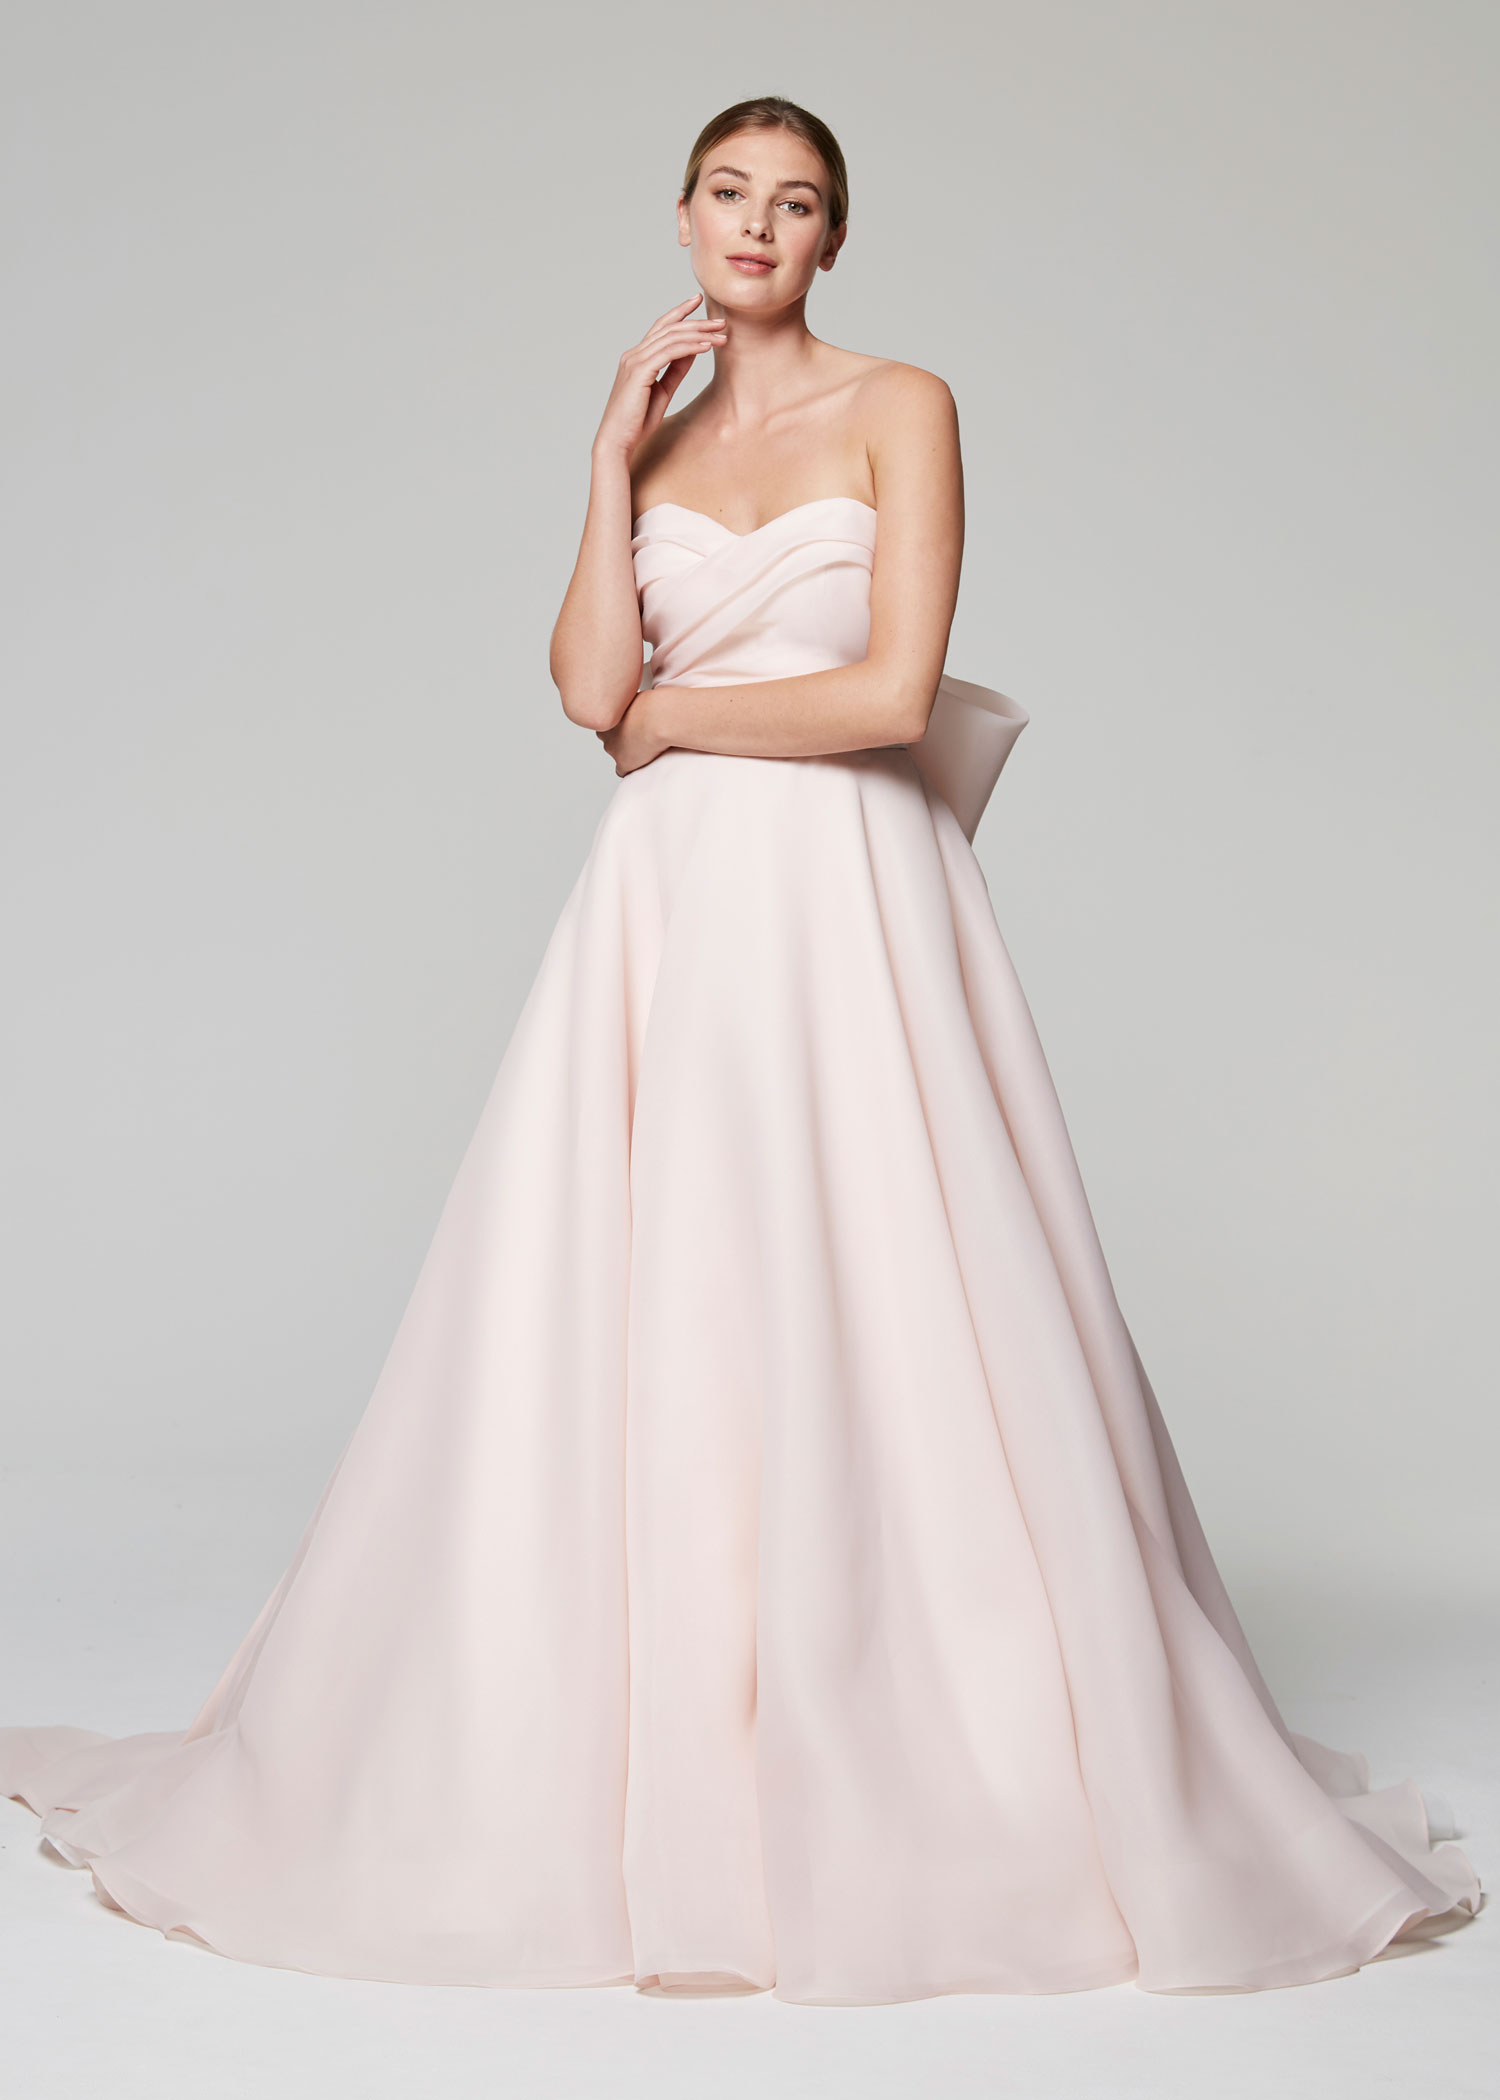 90f5f5c66b8a Anne Barge Blue Willow Bride Fall 2018 collection sweetheart gazar gown  with bow